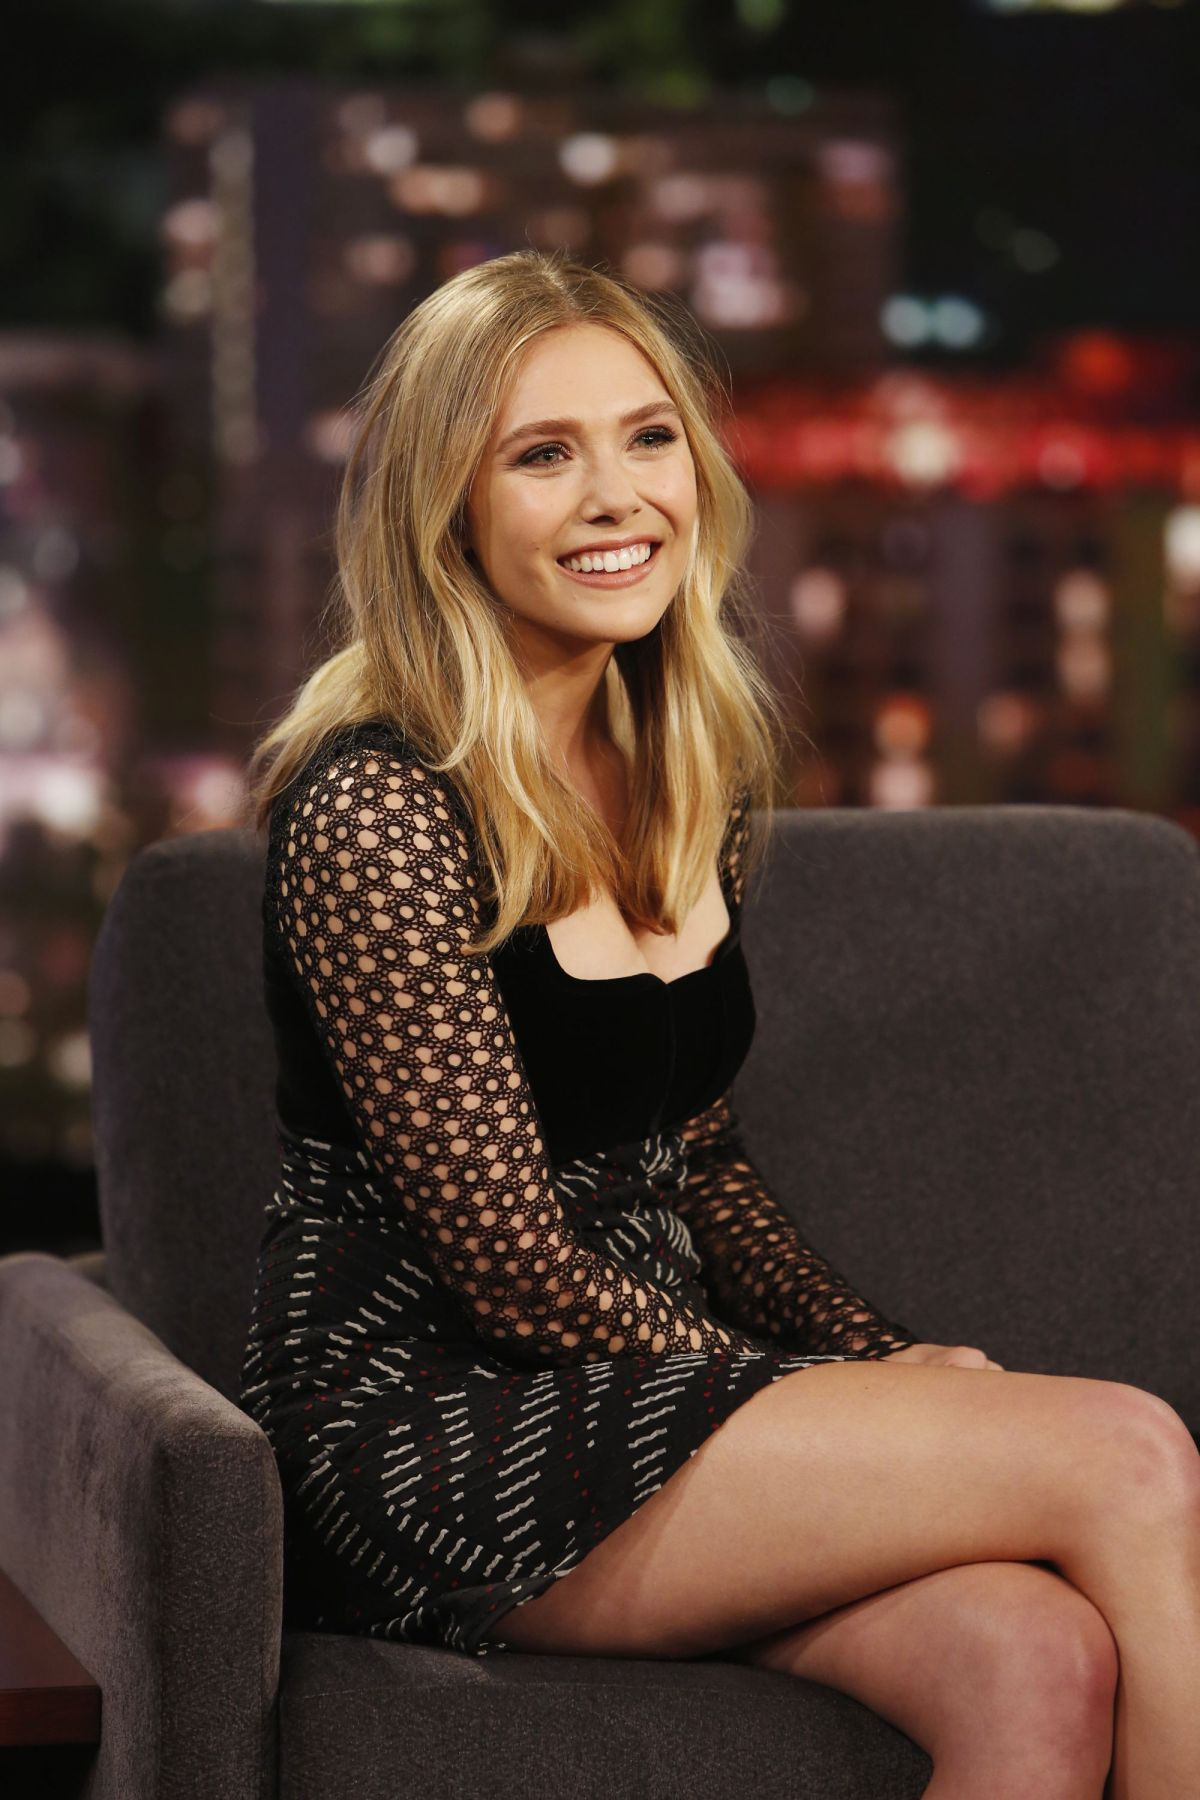 Elizabeth Olsen Wallpaper For IPhone